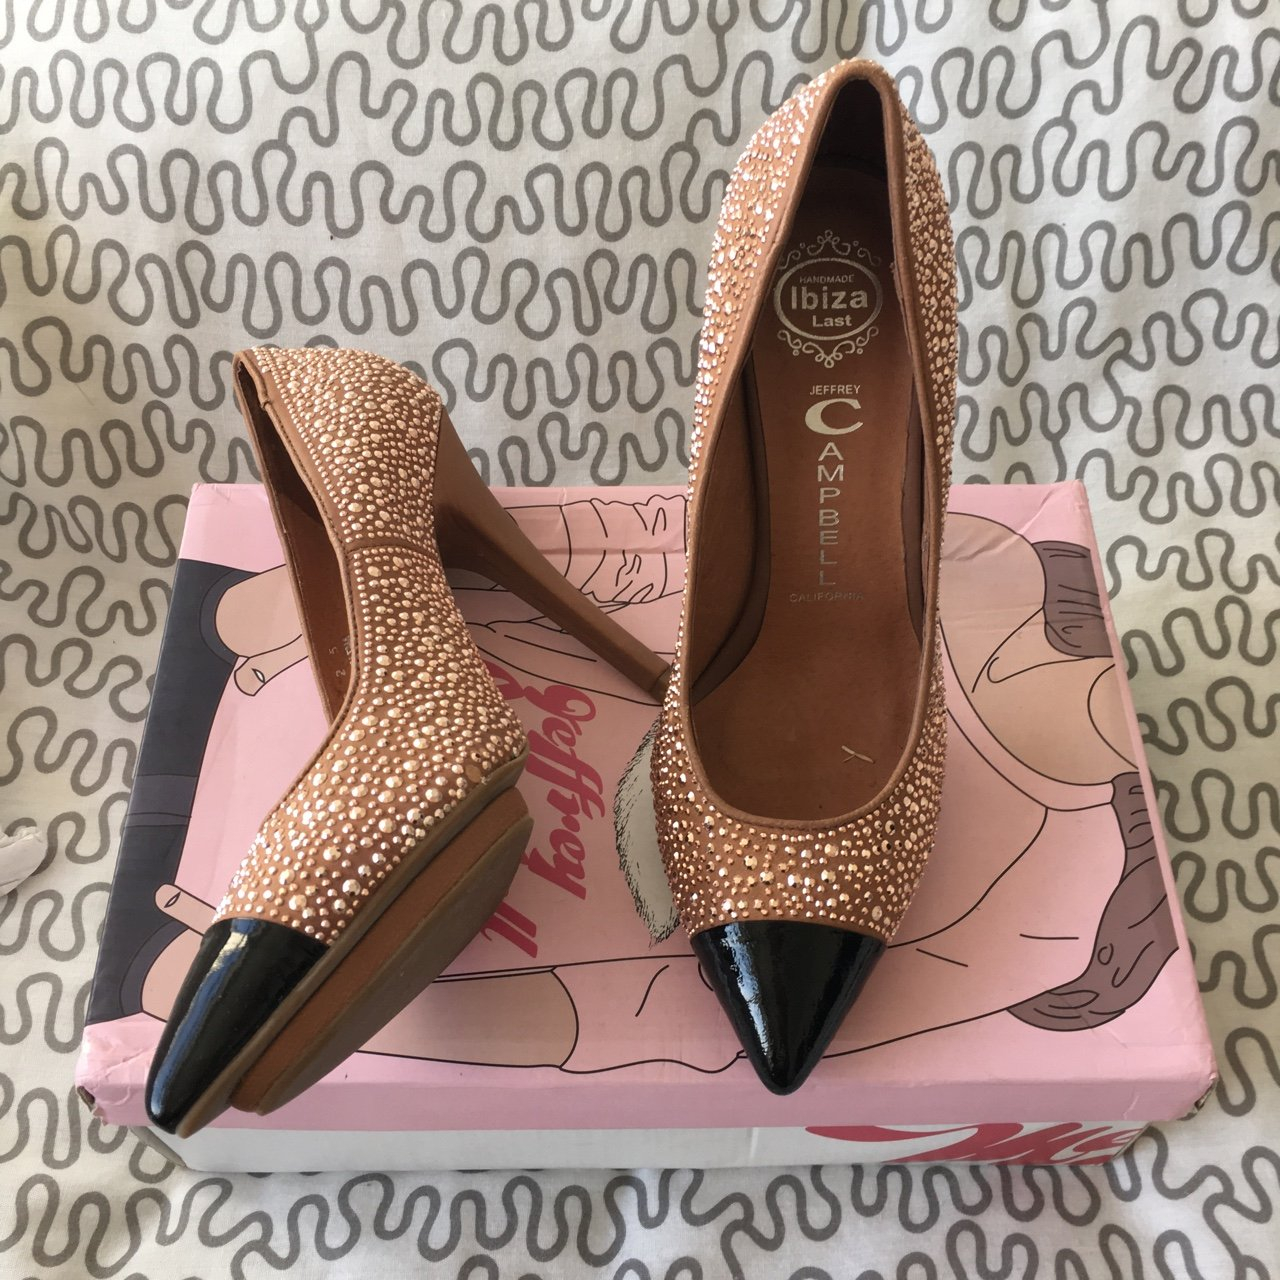 b65d31487f1b Jeffrey Campbell pointed toe court heels brand new in box 5 - Depop